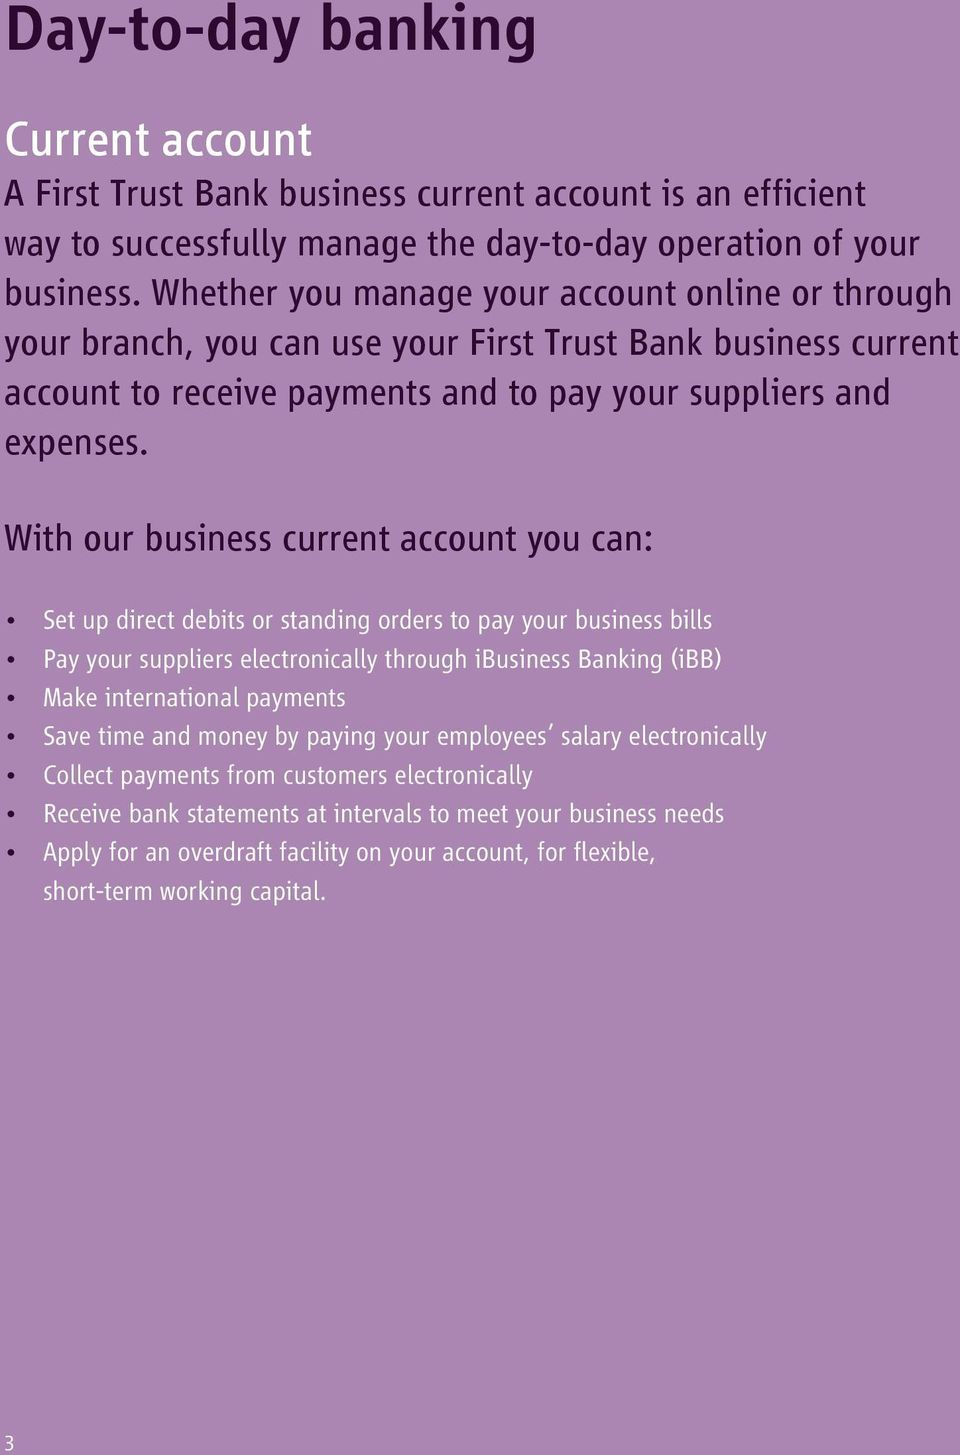 With our business current account you can: Set up direct debits or standing orders to pay your business bills Pay your suppliers electronically through ibusiness Banking (ibb) Make international